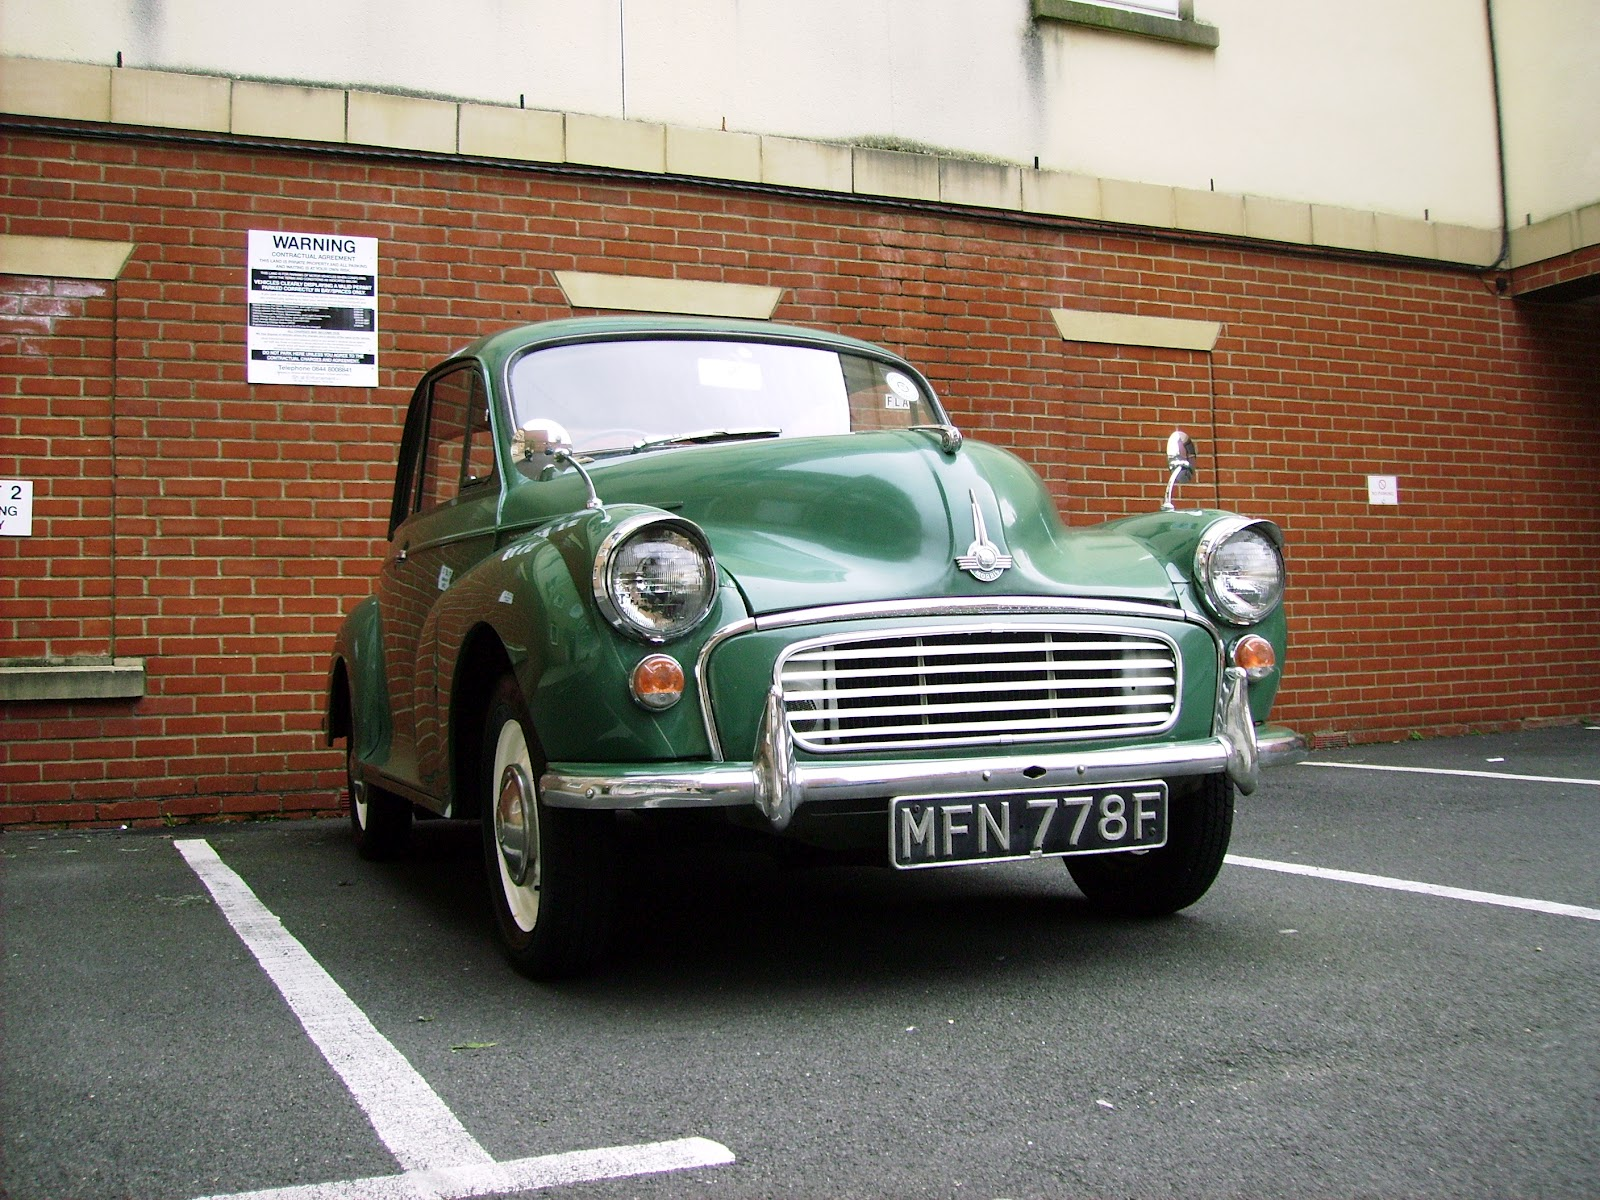 Fuse Box Spitfire Gt6 Forum Triumph Experience Car Forums The Morris Minor Headlight 31 Wiring Diagram Images Imgp0334 Living With A It Since Then At